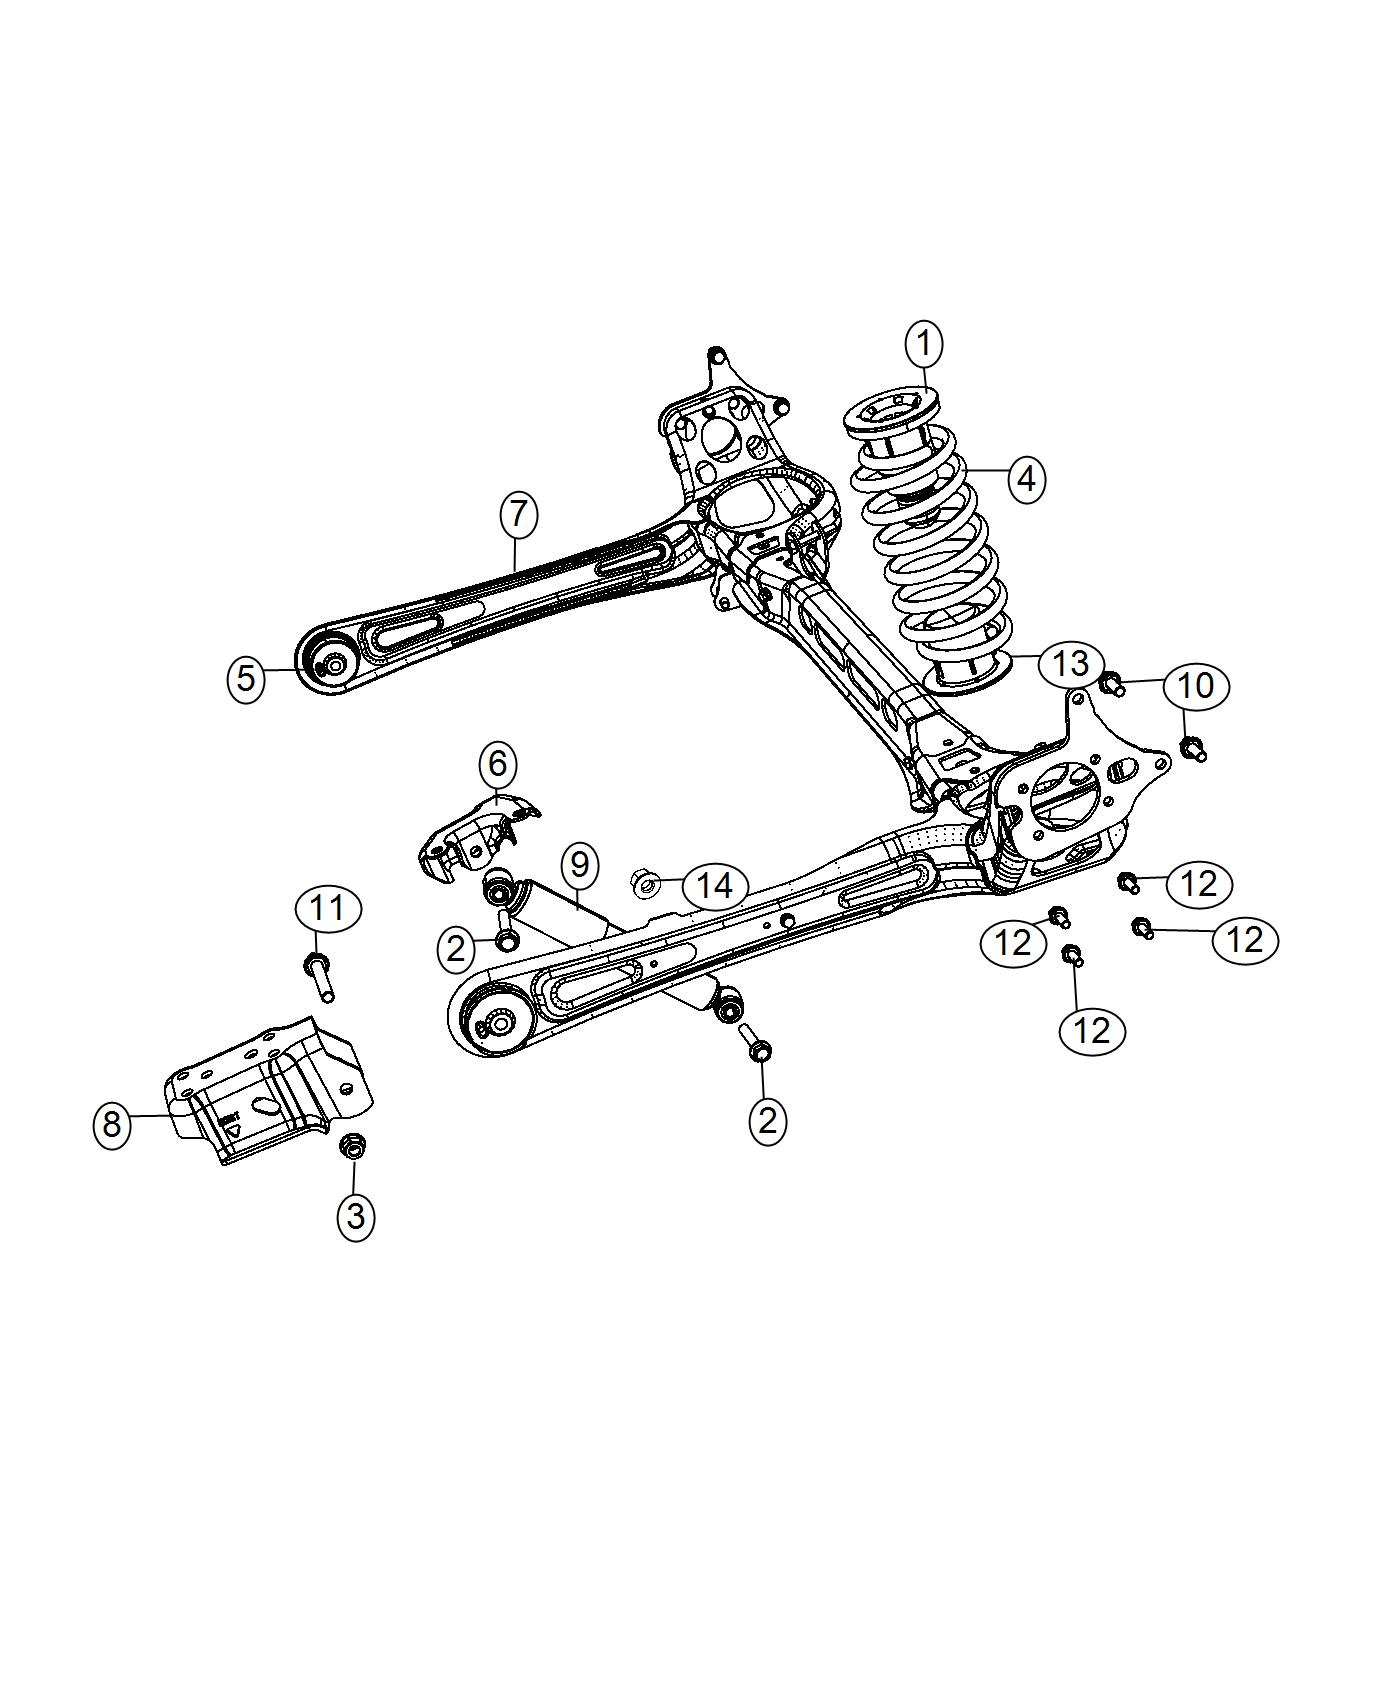 Dodge Grand Caravan Axle Assembly Rear Suspension